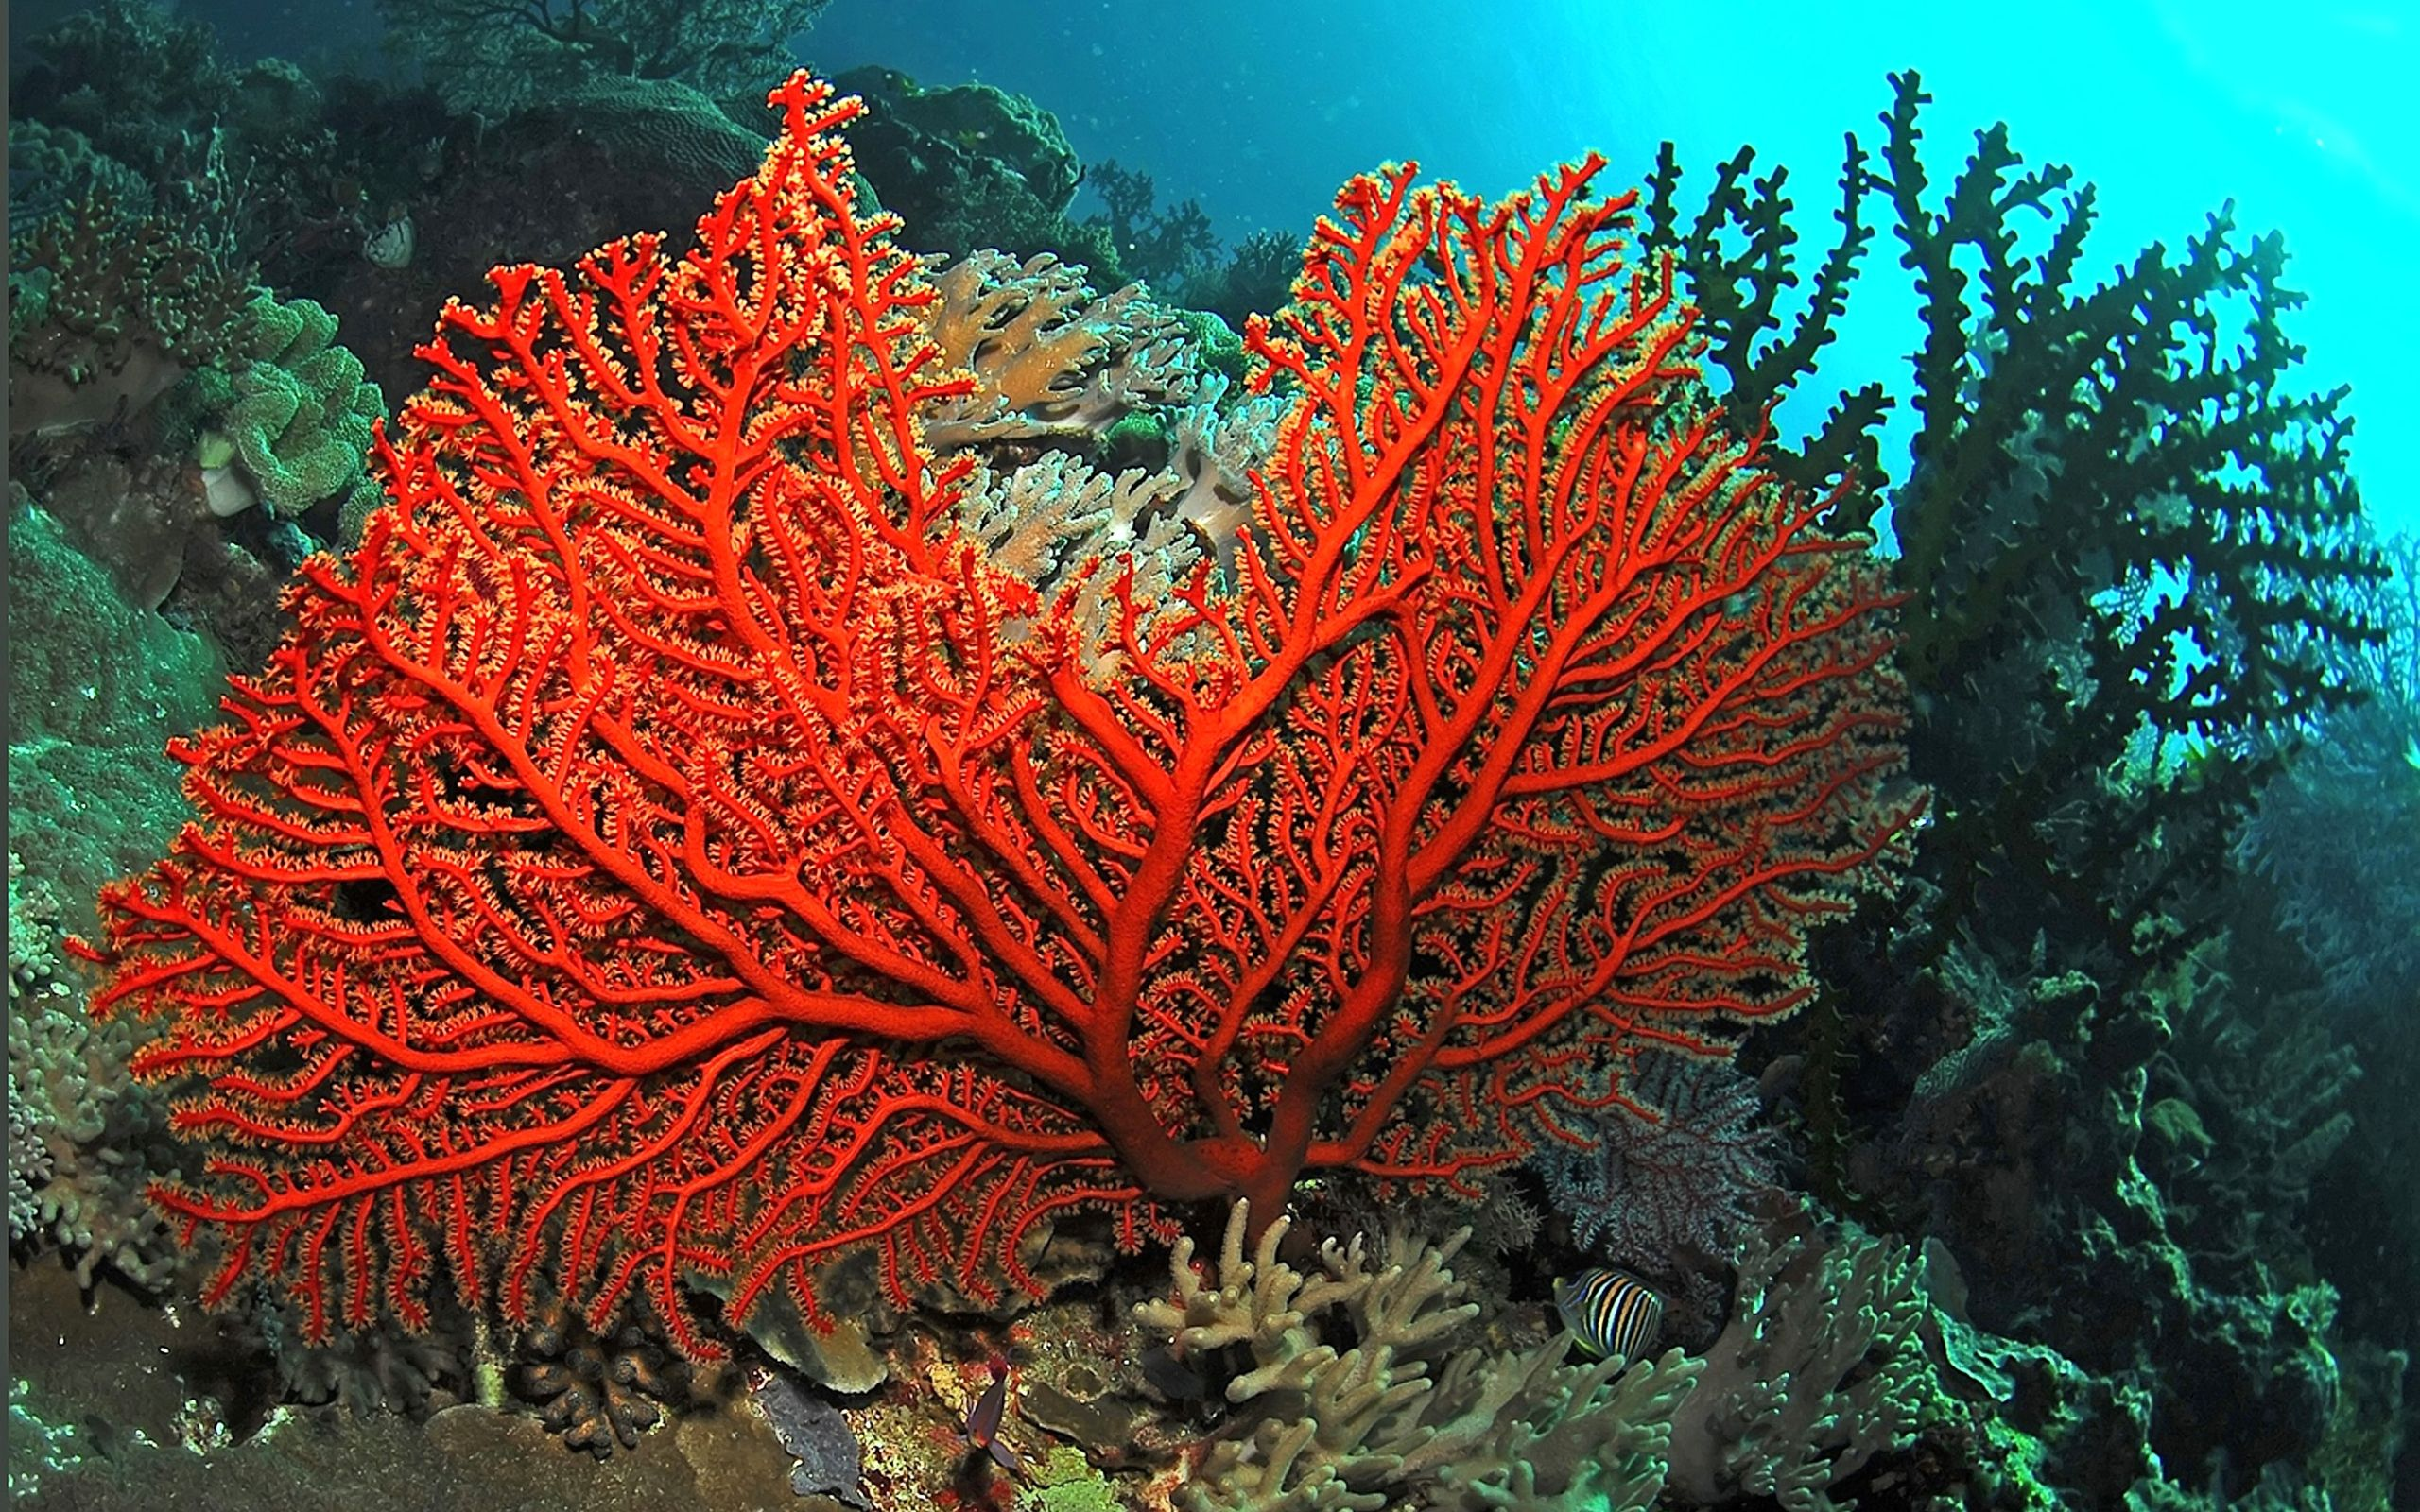 eede3a4ee6 red coral ocean images - Google Search